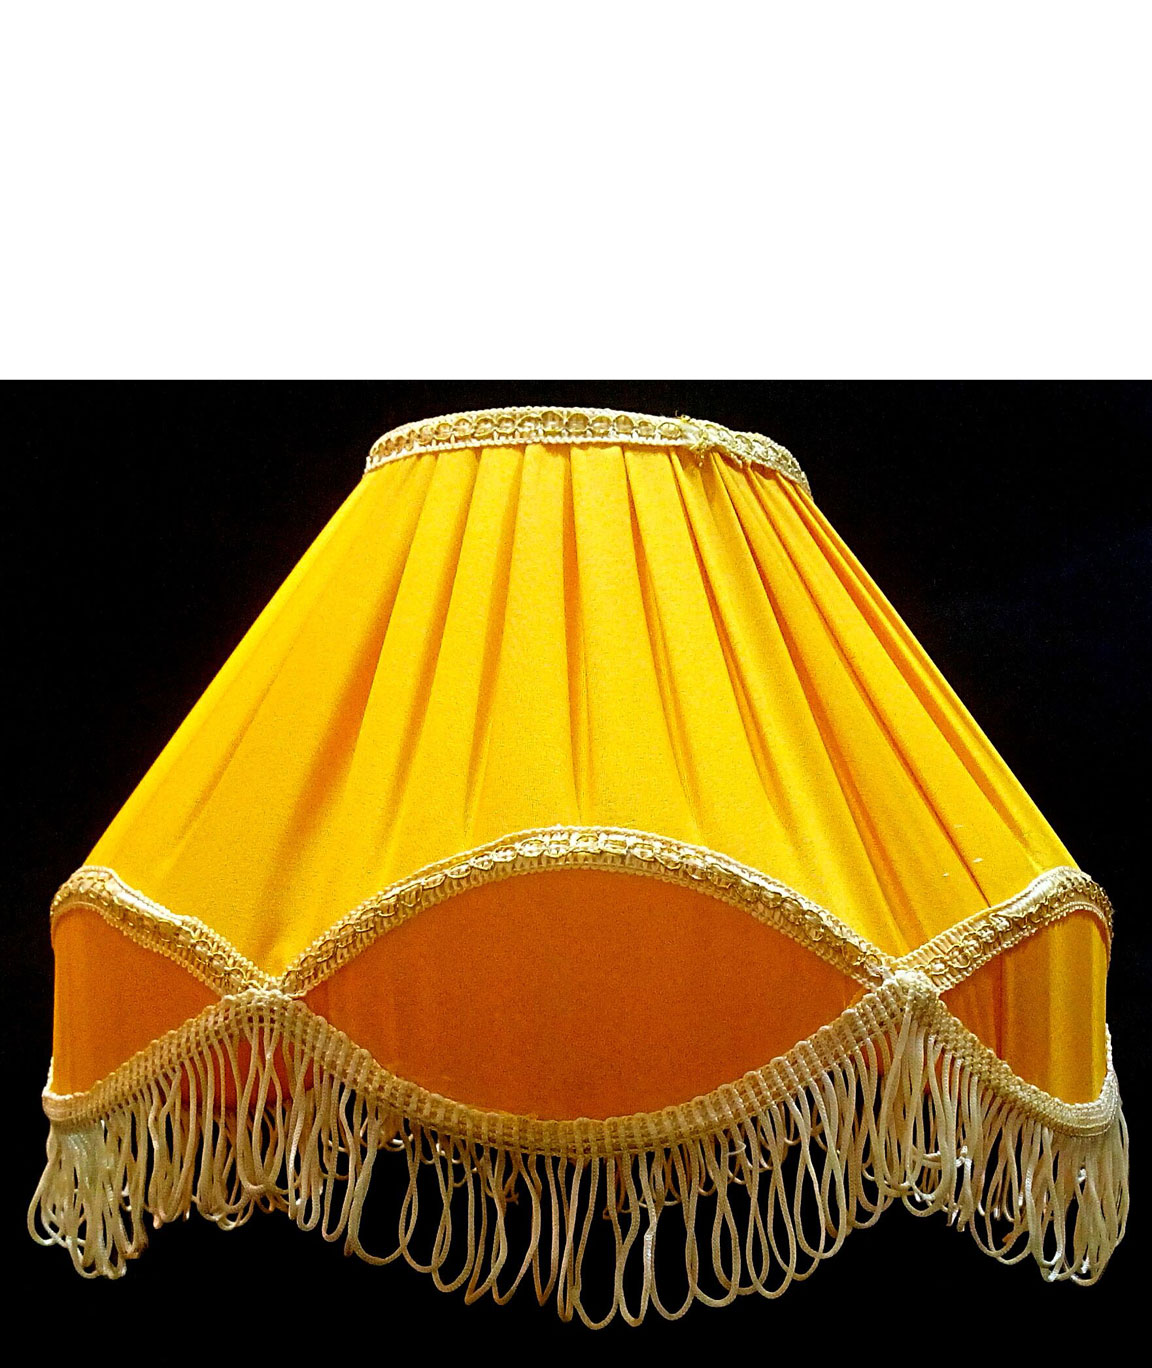 RDC 12 Inches Round Pleated Yellow with Golden Lace Border with Frills Lamp Shade for Table Lamp